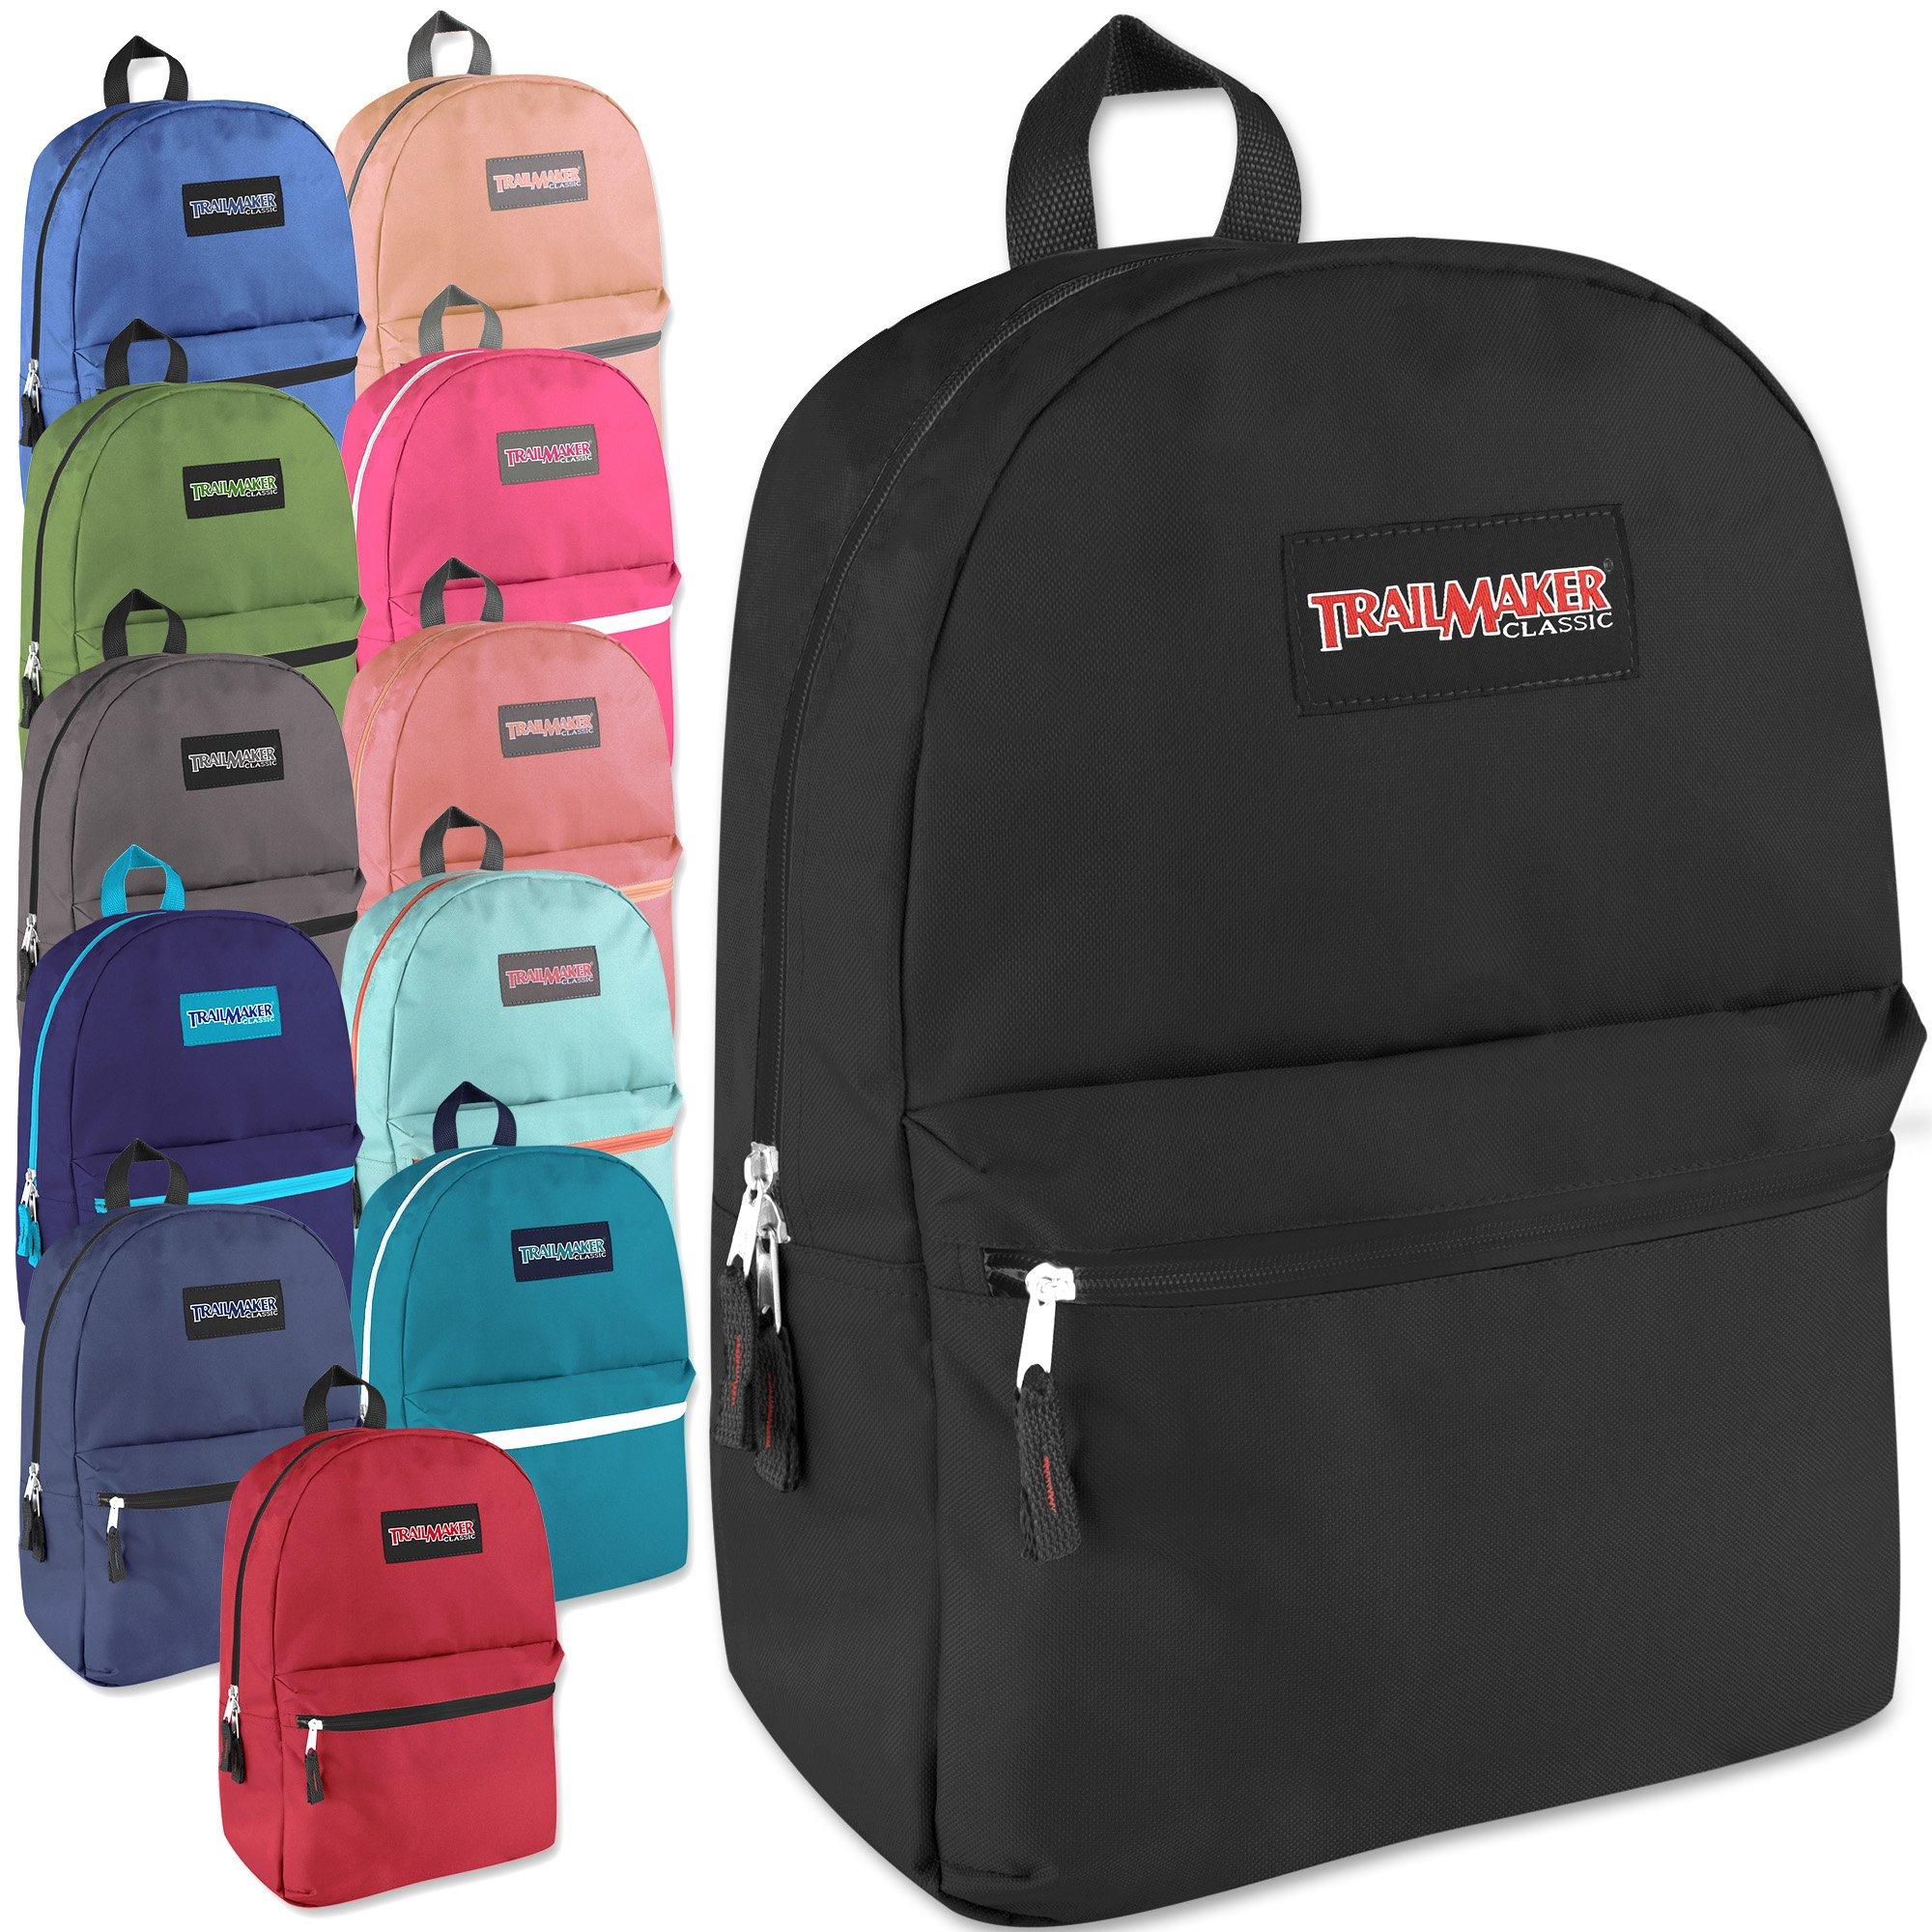 Classic 17 Inch Backpack in 12 Colors Case Pack 24 by Trailmaker